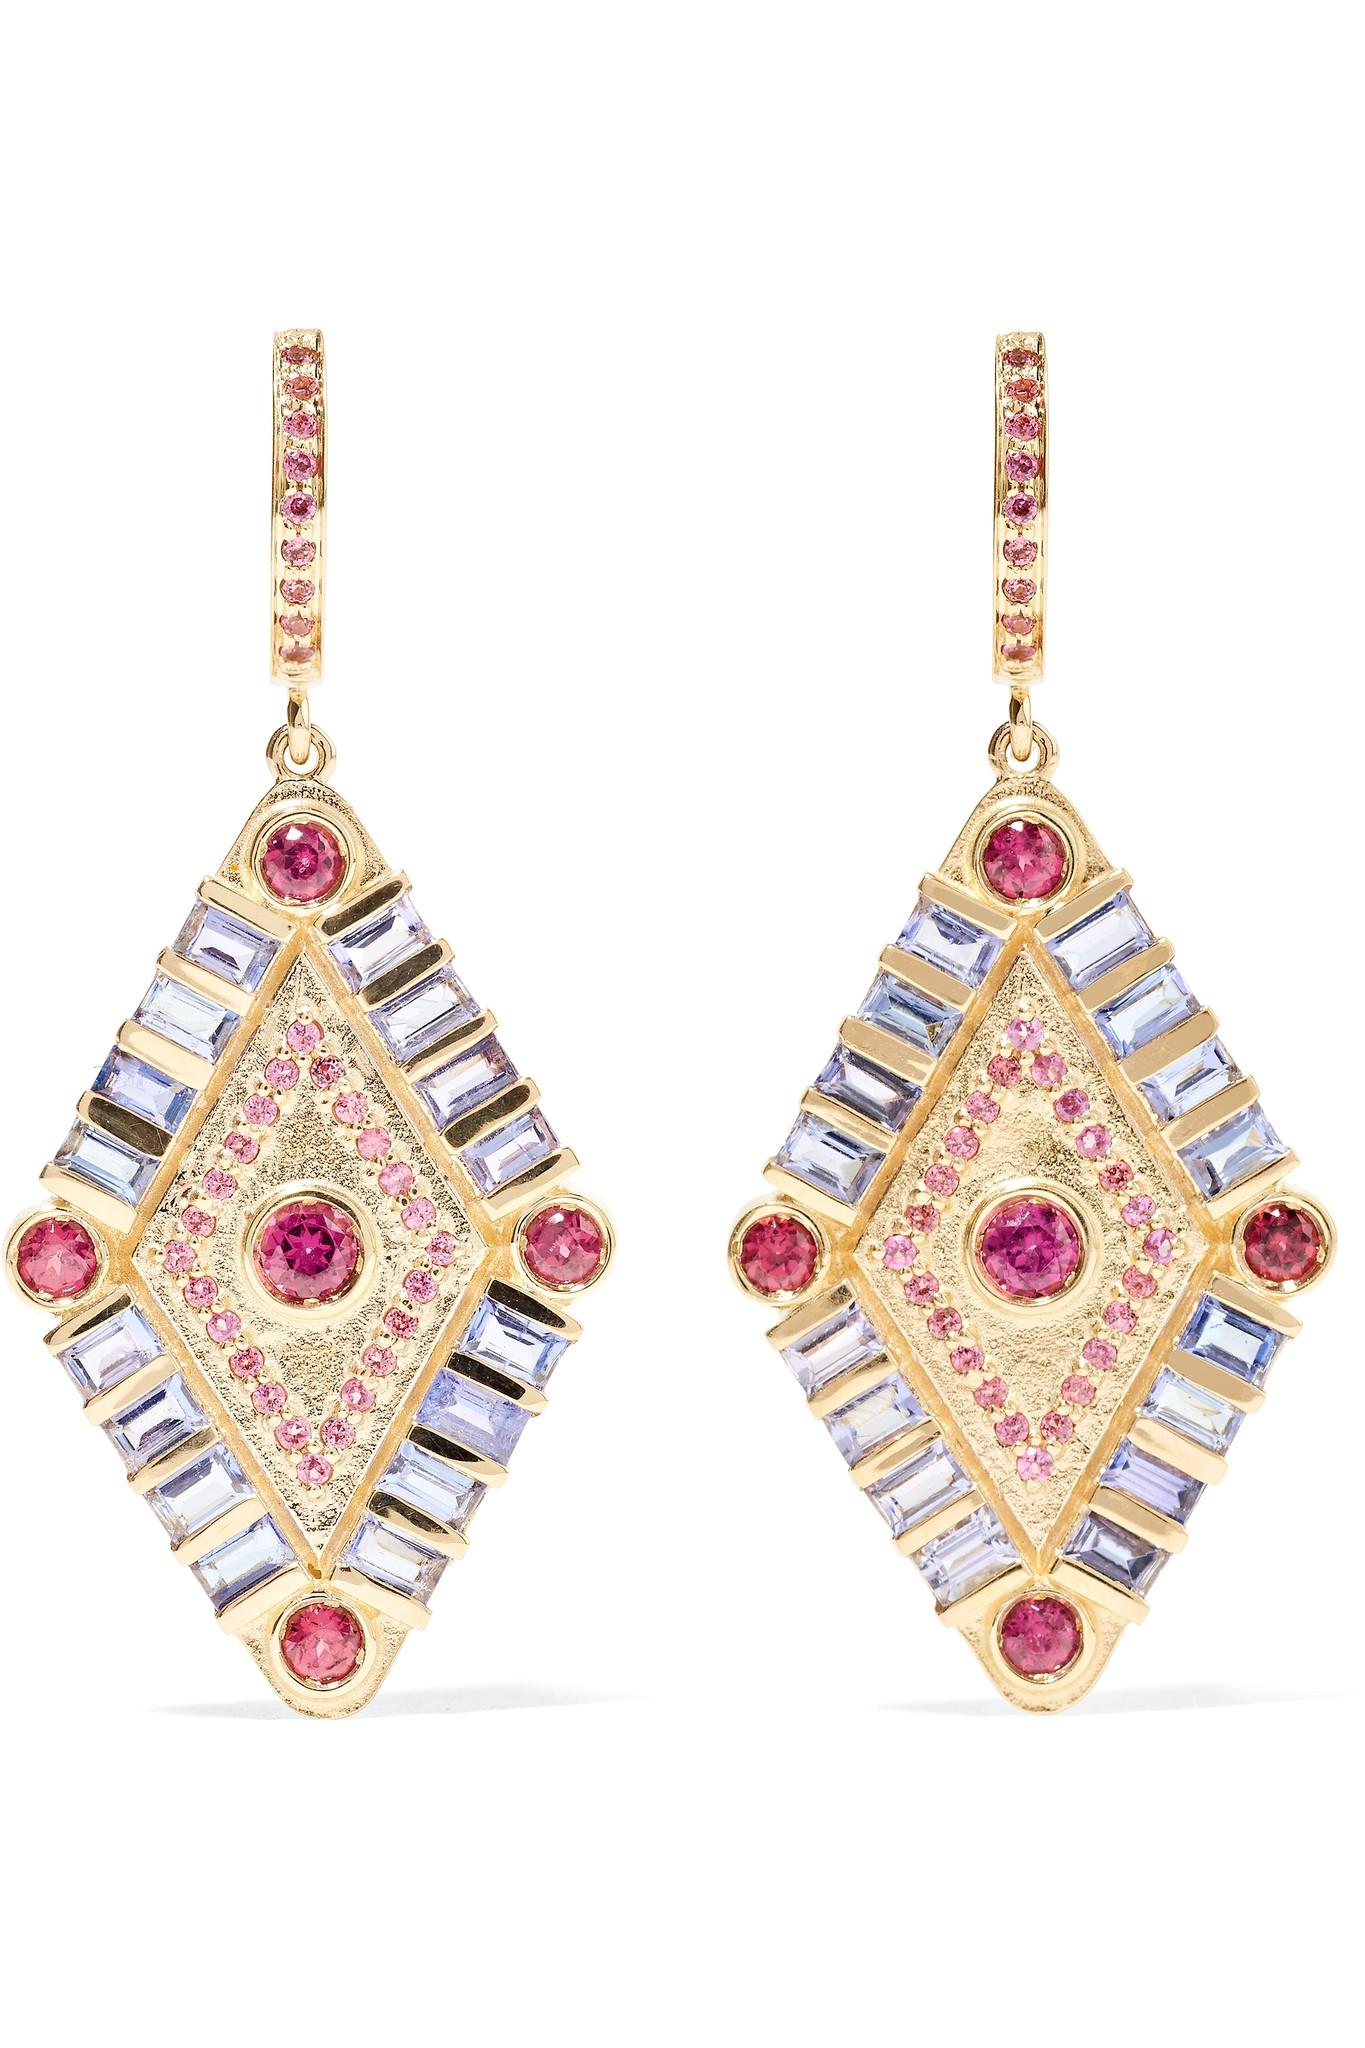 Marlo Laz Shamans Eye 14-karat Gold, Tanzanite And Garnet Earrings